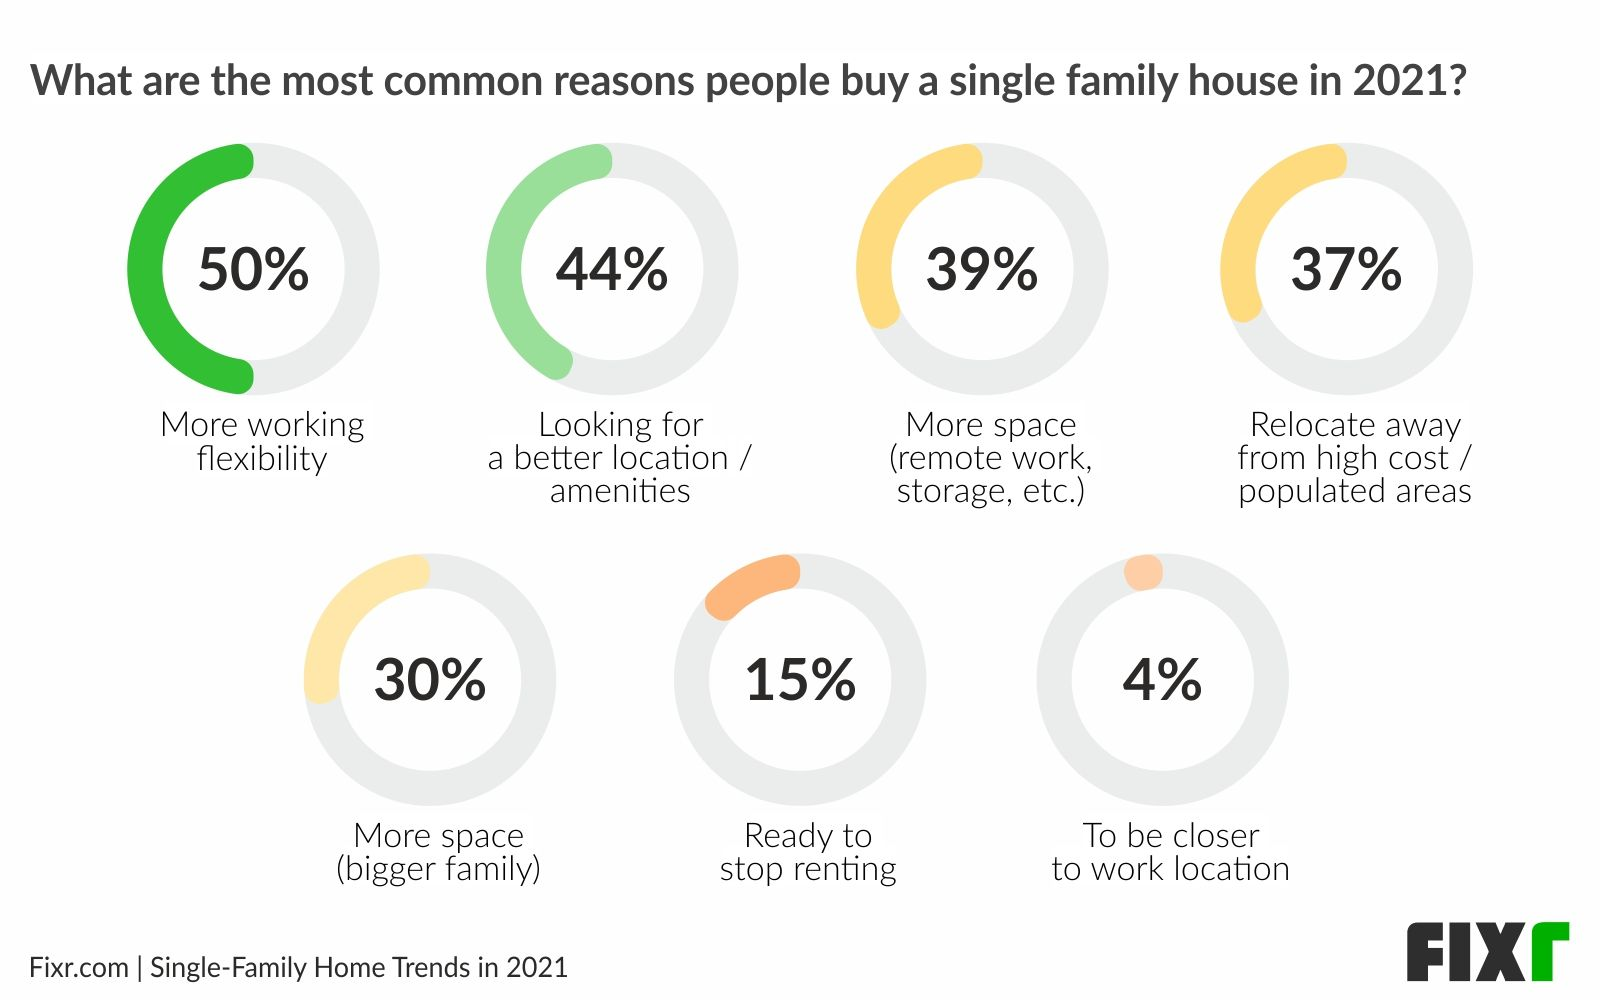 Top reasons to buy new single-family homes in 2021